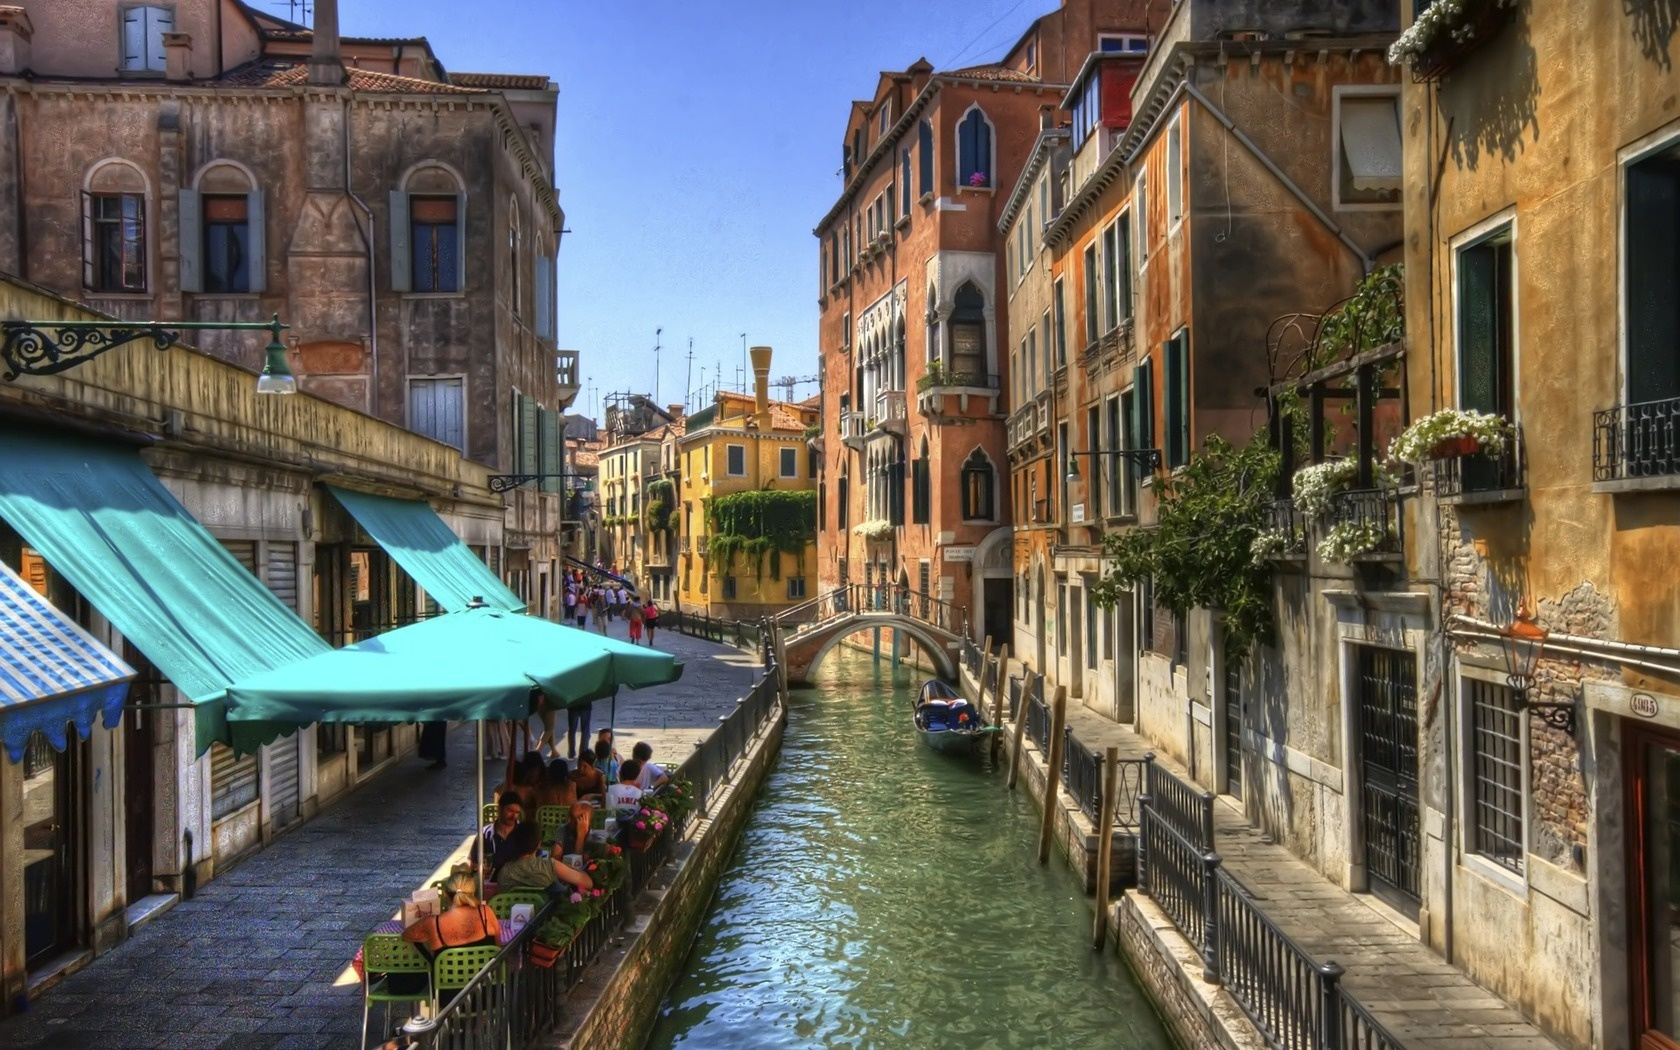 Amazing venice italy channel wallpapers 1680x1050 685214 for Italy wallpaper